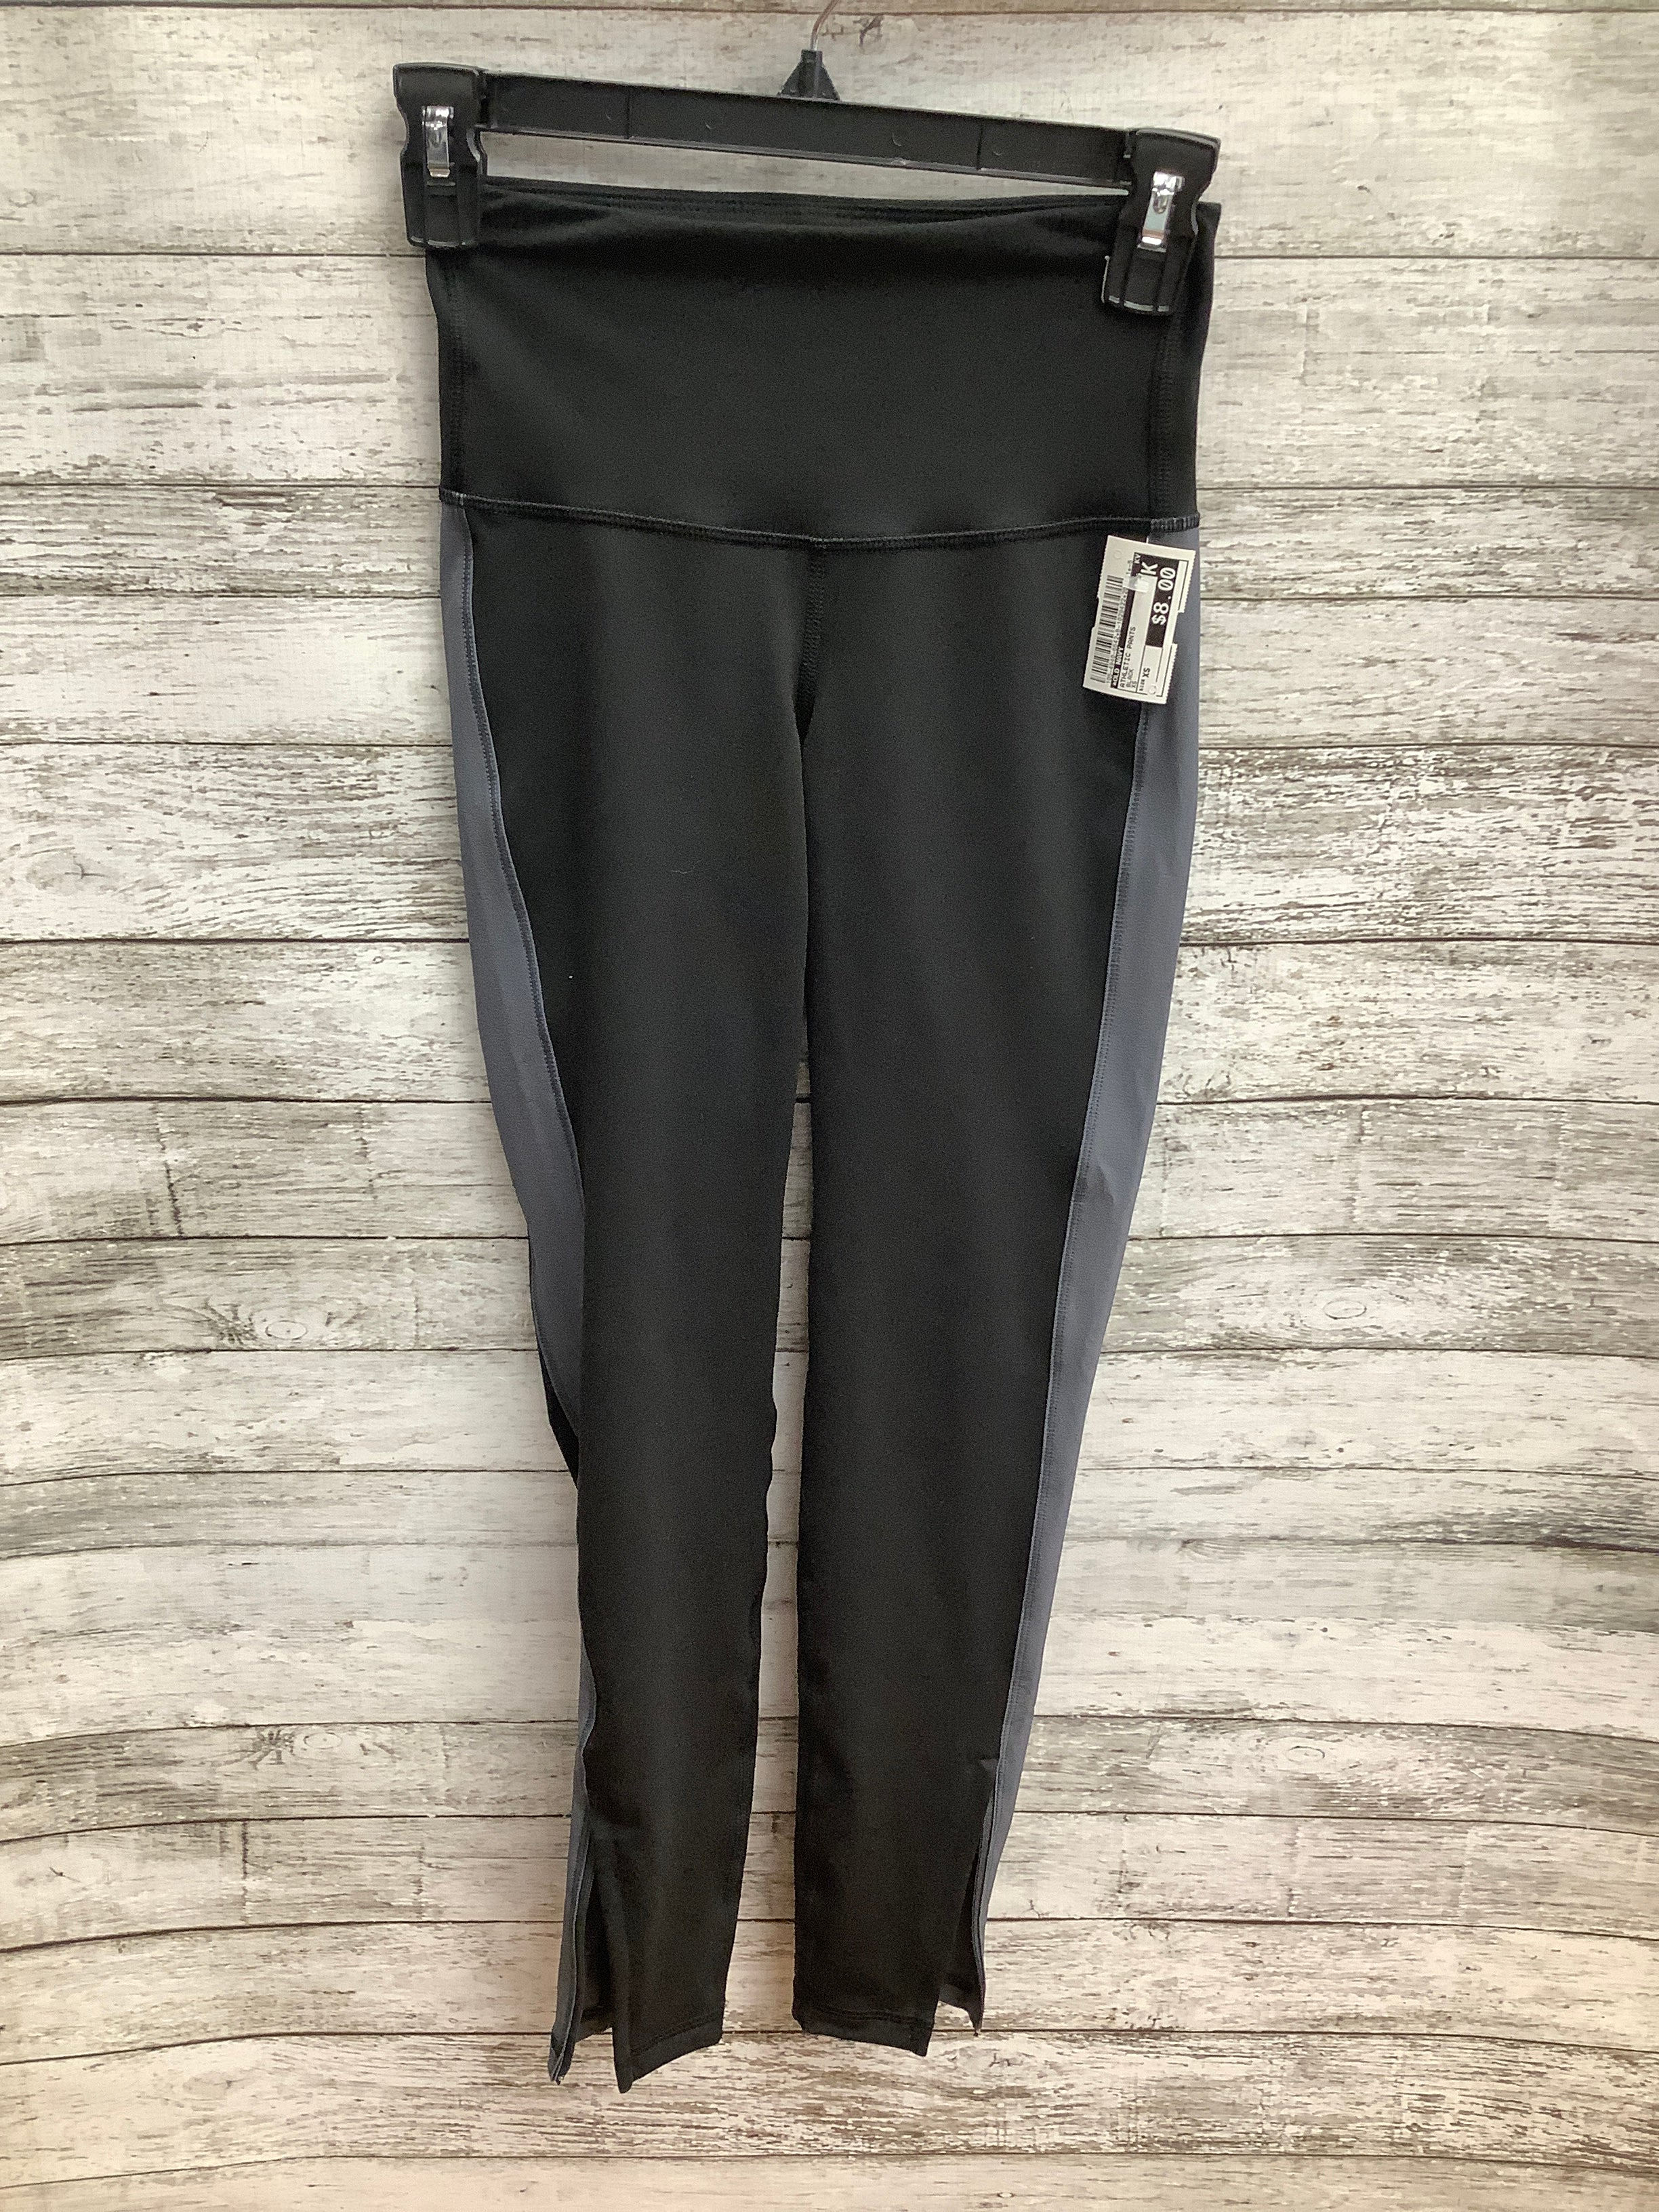 Primary Photo - brand: old navy , style: athletic pants , color: black , size: xs , sku: 105-4940-6542